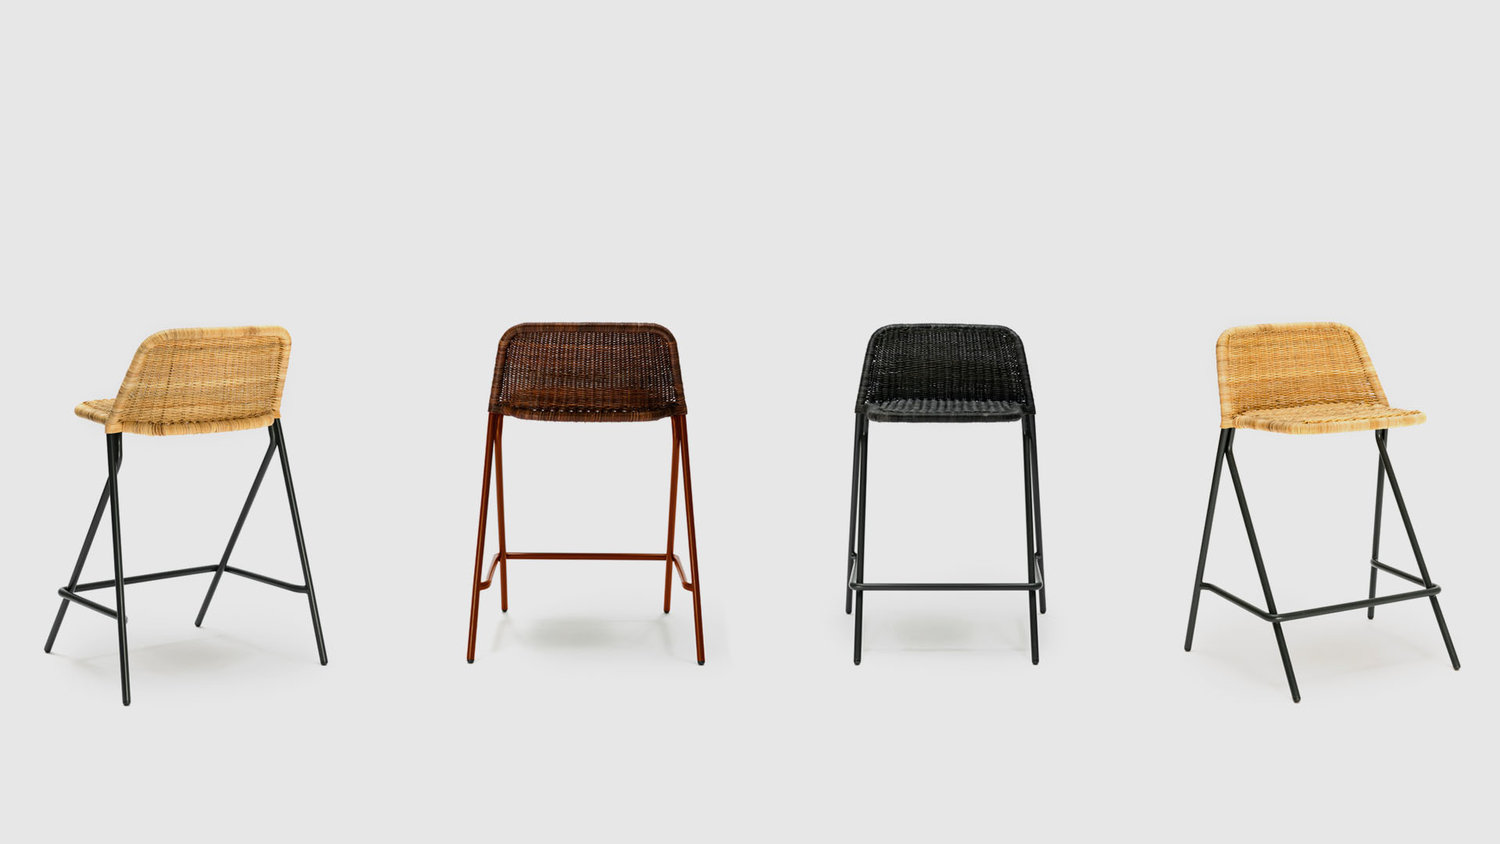 Inspired By Nature Designer Jamie Mclellan And The Kaki Chair